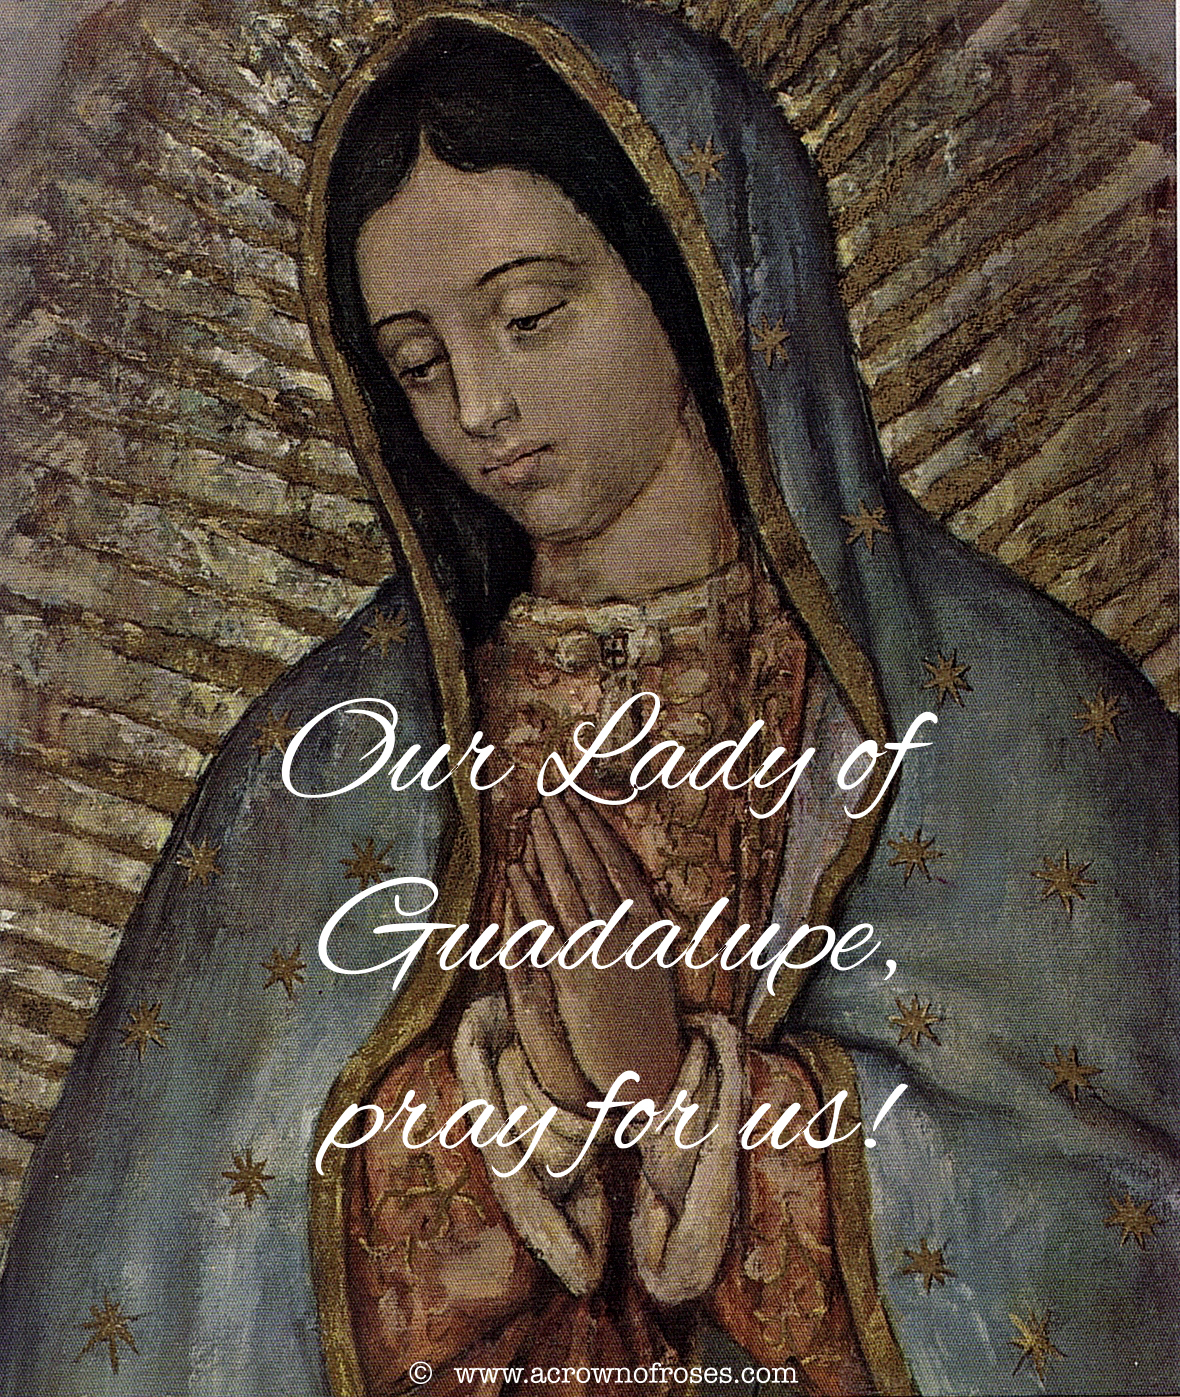 our-lady-of-guadalupe_Fotor_Fotor